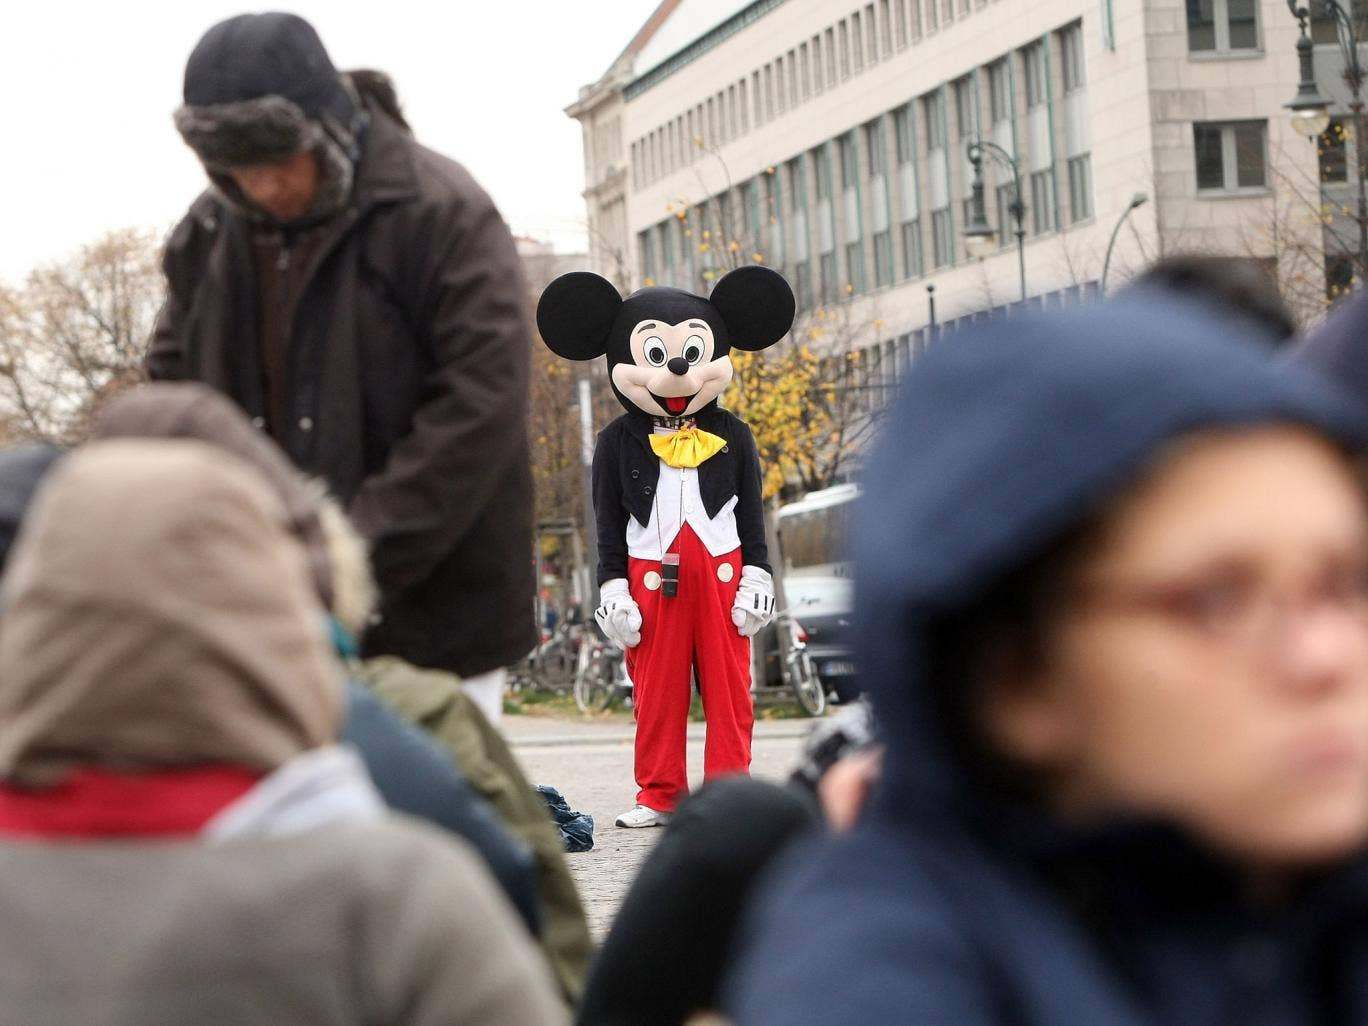 A street performer dressed as Mickey Mouse stands near protesting refugees as they stage a hunger strike in front of the Brandenburg Gate on October 25, 2012 in Berlin, Germany. The demonstrators, predominantly from Iran, Afghanistan and Iraq are subsisti